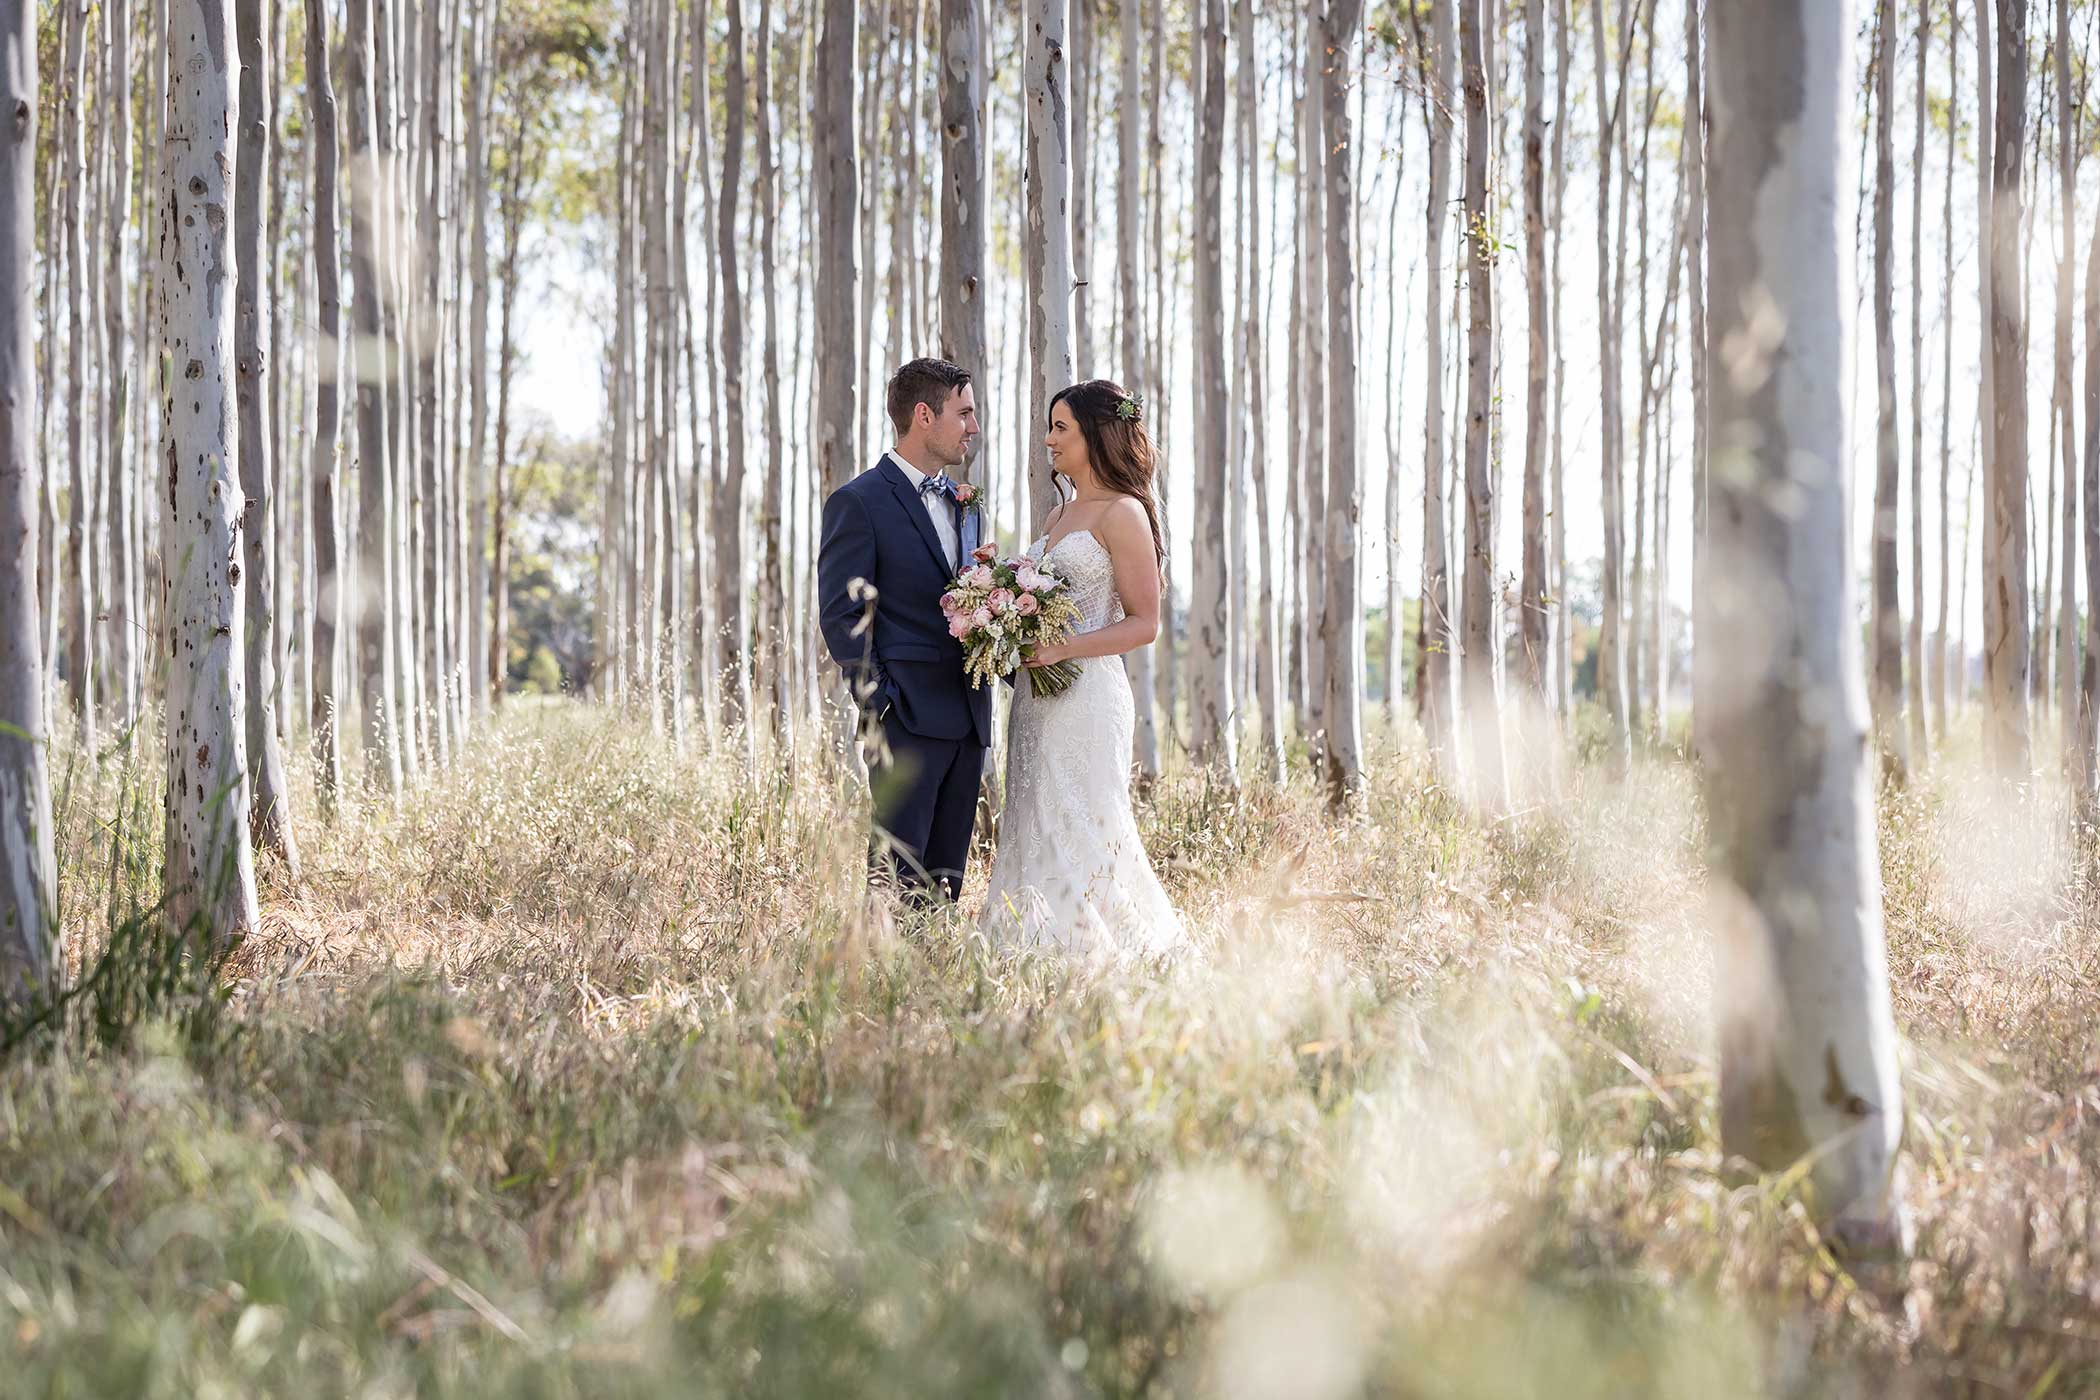 Bride and Groom standing in tall trees in sunlit forest